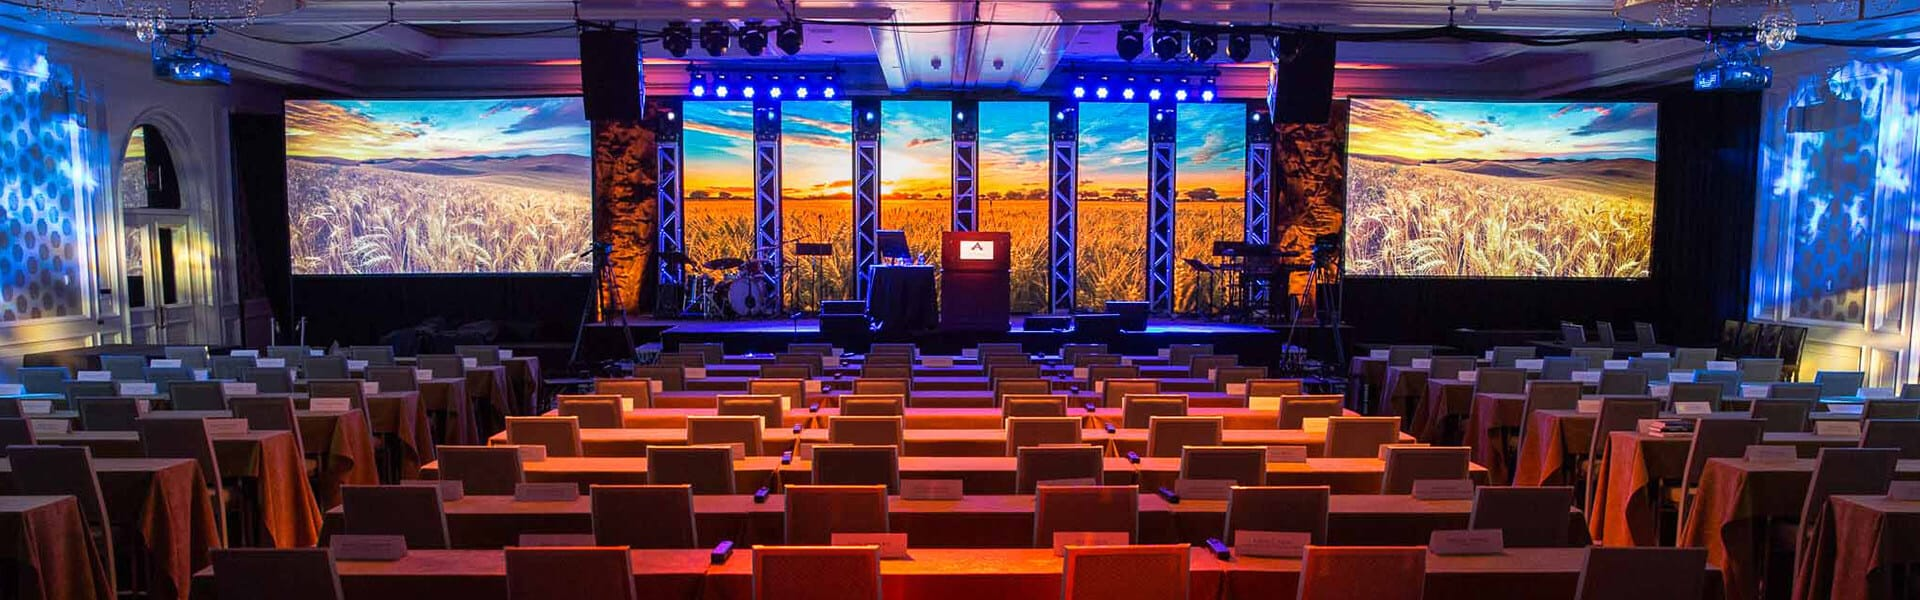 LED Video Wall, Audio Visual, Speakers, Line Array, Truss, Moving Heads, Martin Mac Aura, Staging, Lighting, JBL Vertec, Conference, Summit, AV, Toronto, Product Launch, AV Production, Audio Visual Production